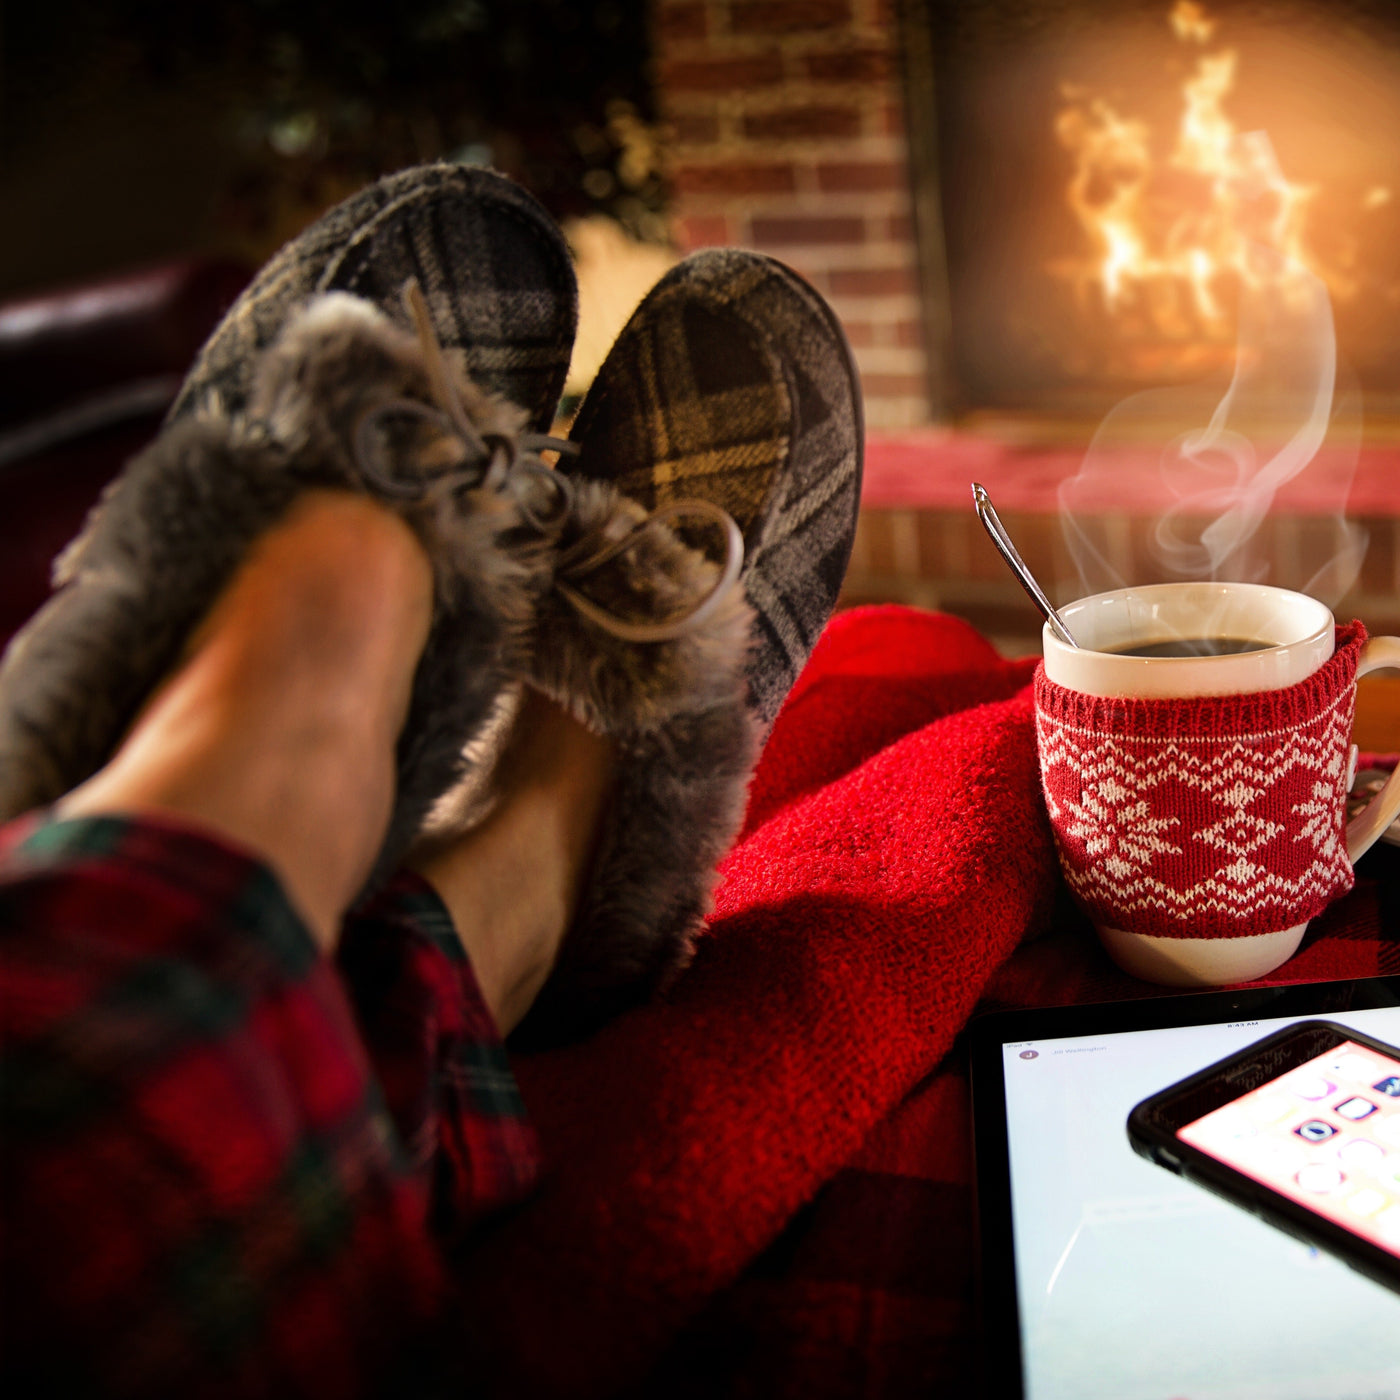 Top 3 Ways to Take Care of Yourself this Holiday Season